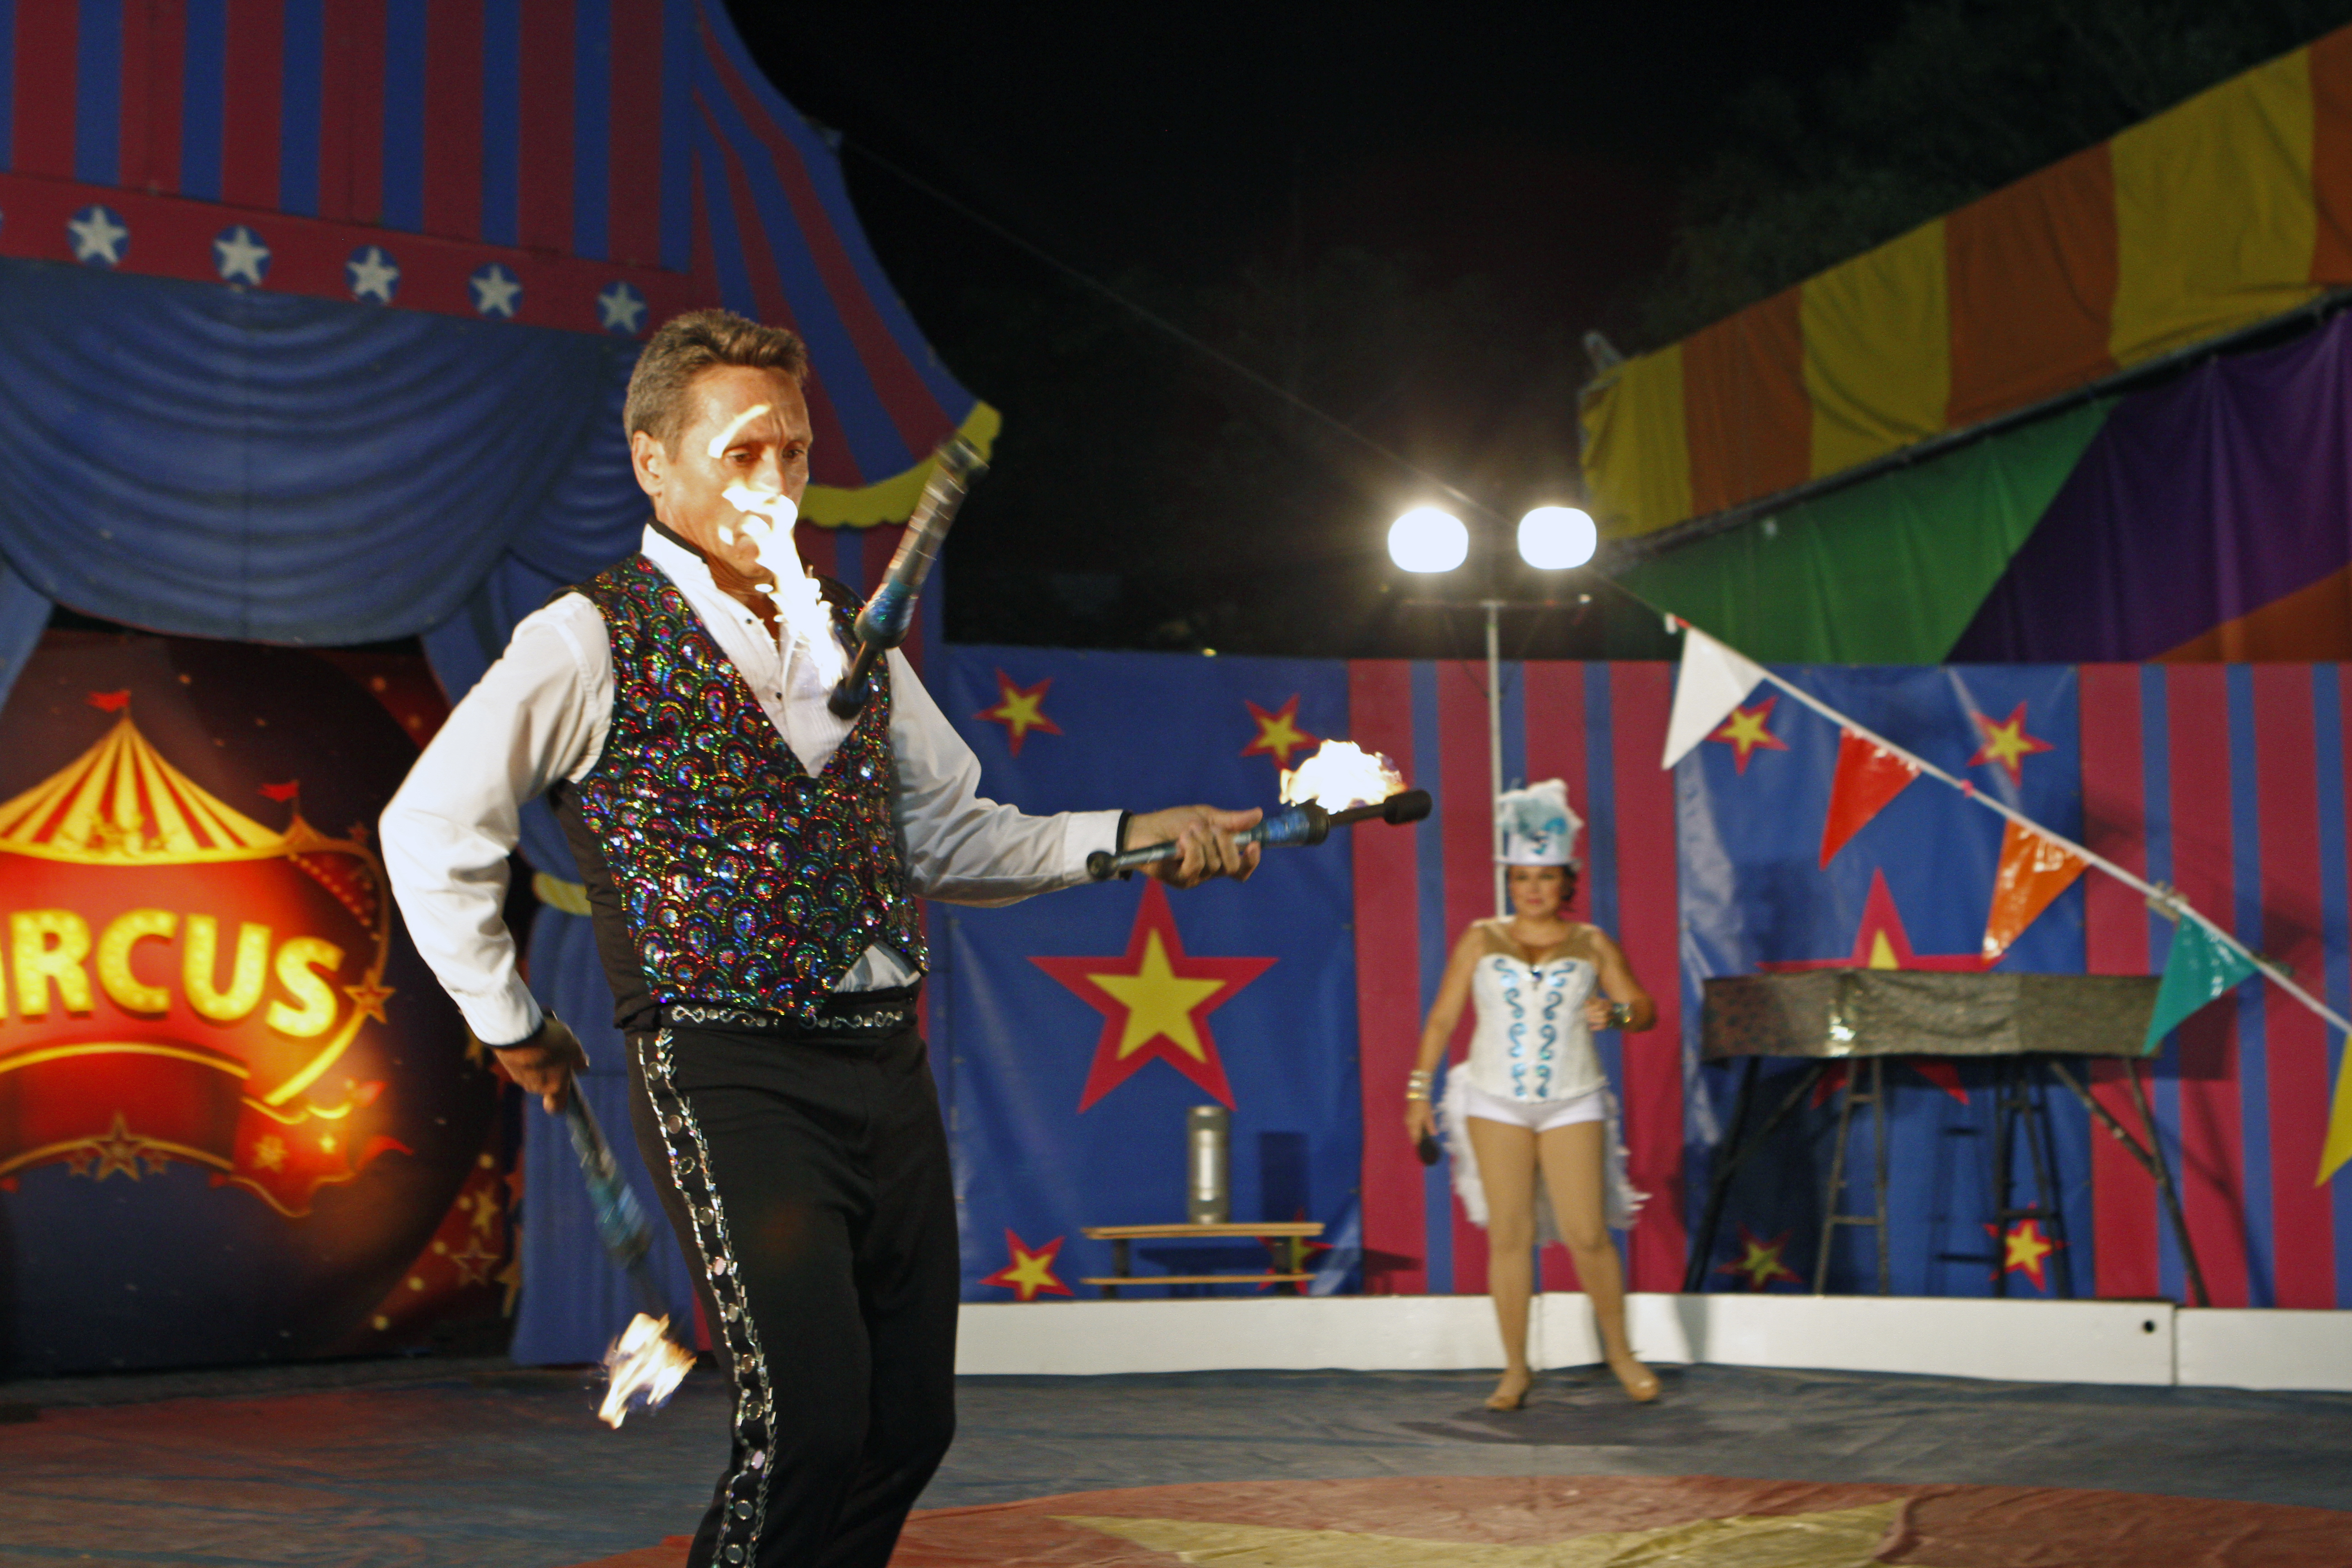 a man juggling flame lit torches in a circus setting at night